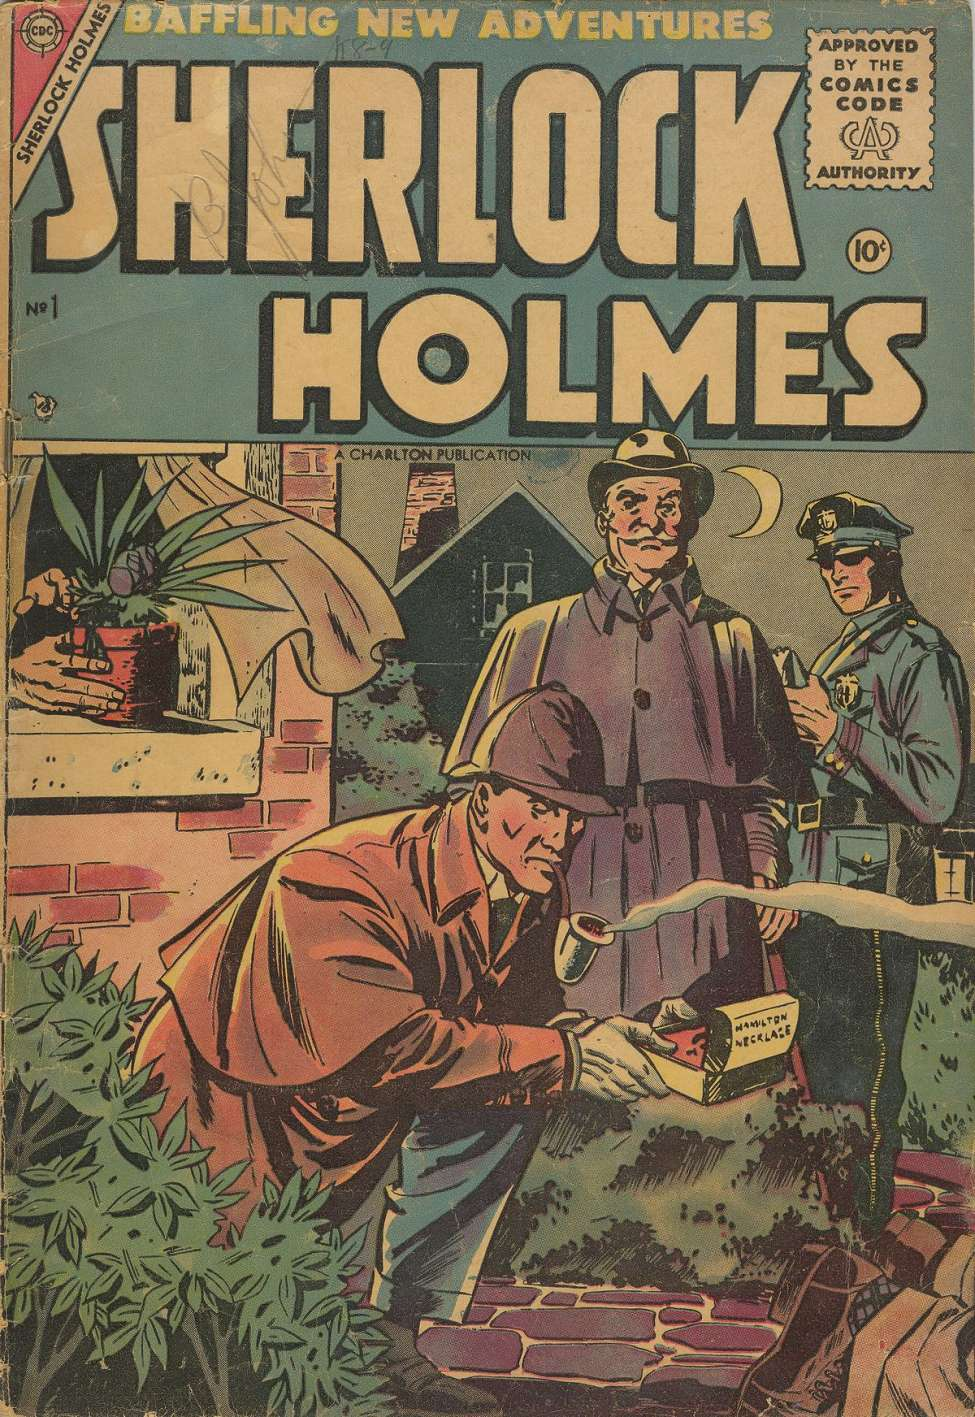 Cover art of Sherlock Holmes #1, Oct 1955, Charlton Comics